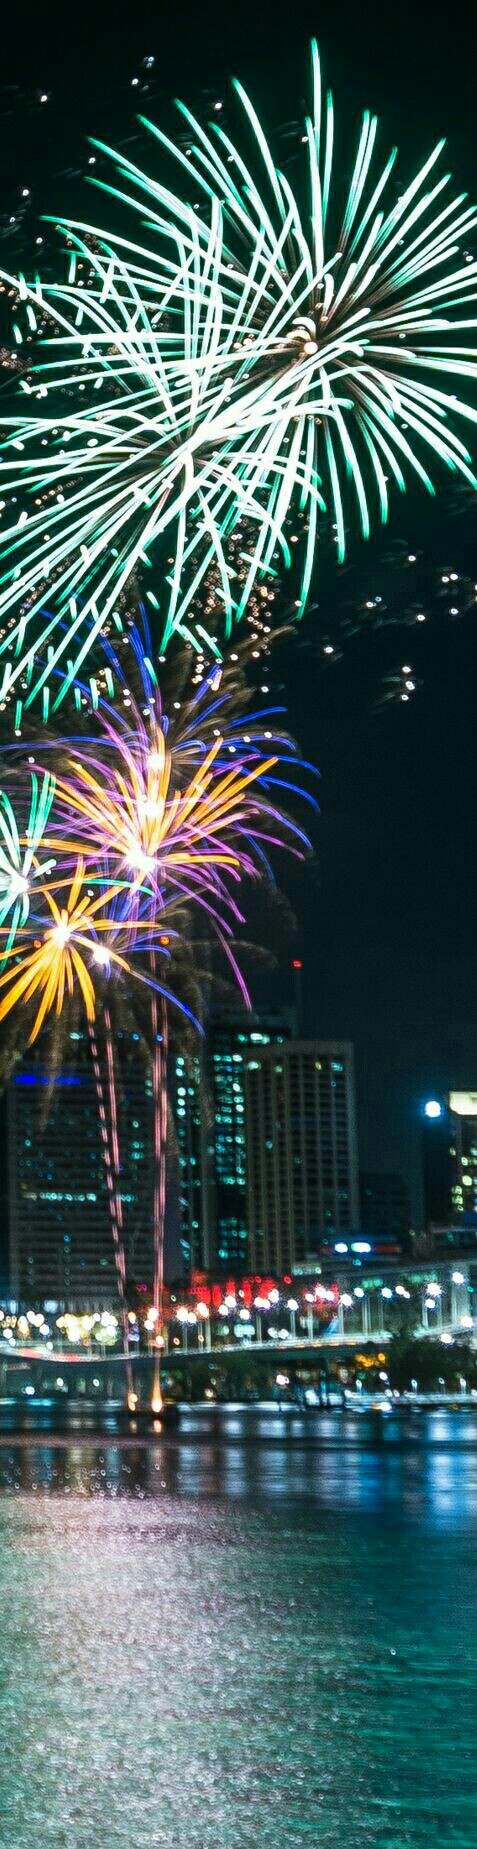 Xmas Fireworks on the Brisbane River at Southbank photo